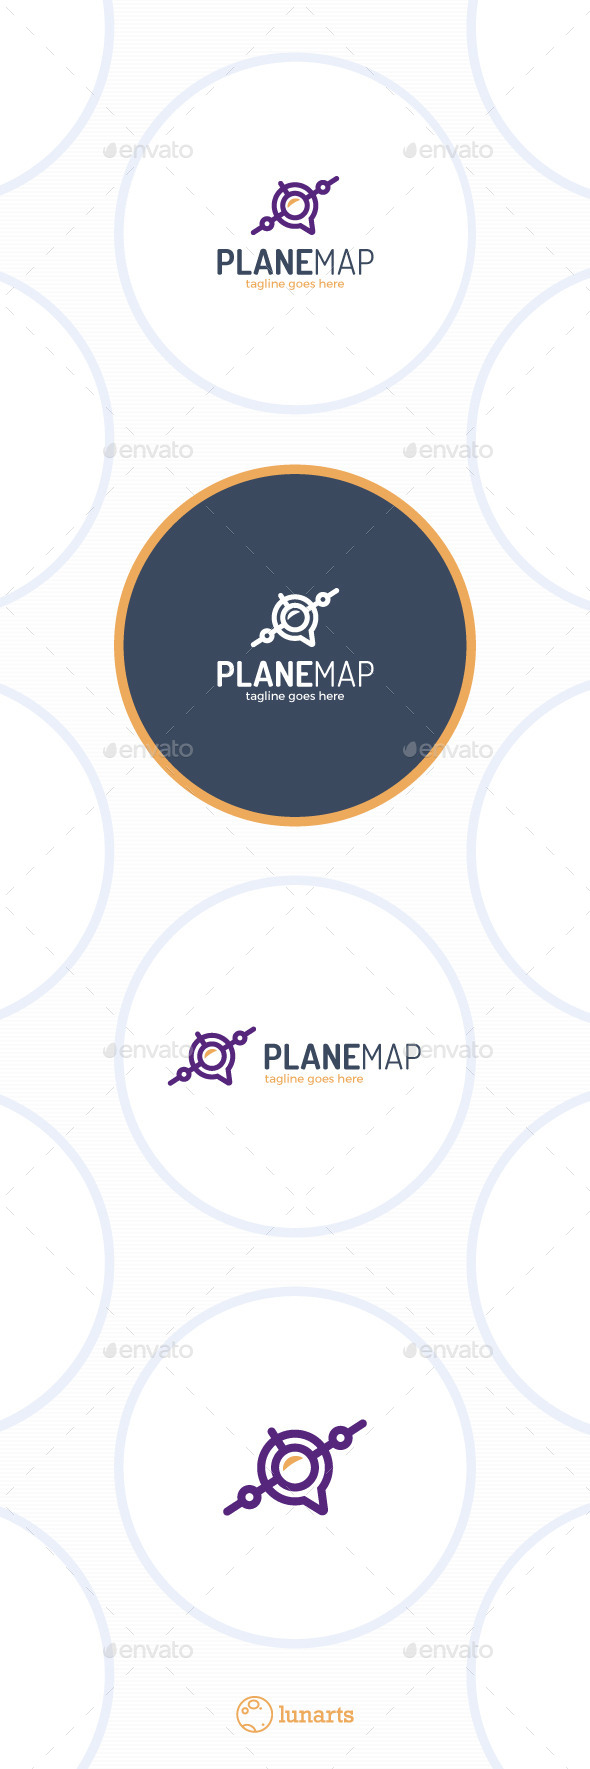 Plane Map Logo - Location - Symbols Logo Templates